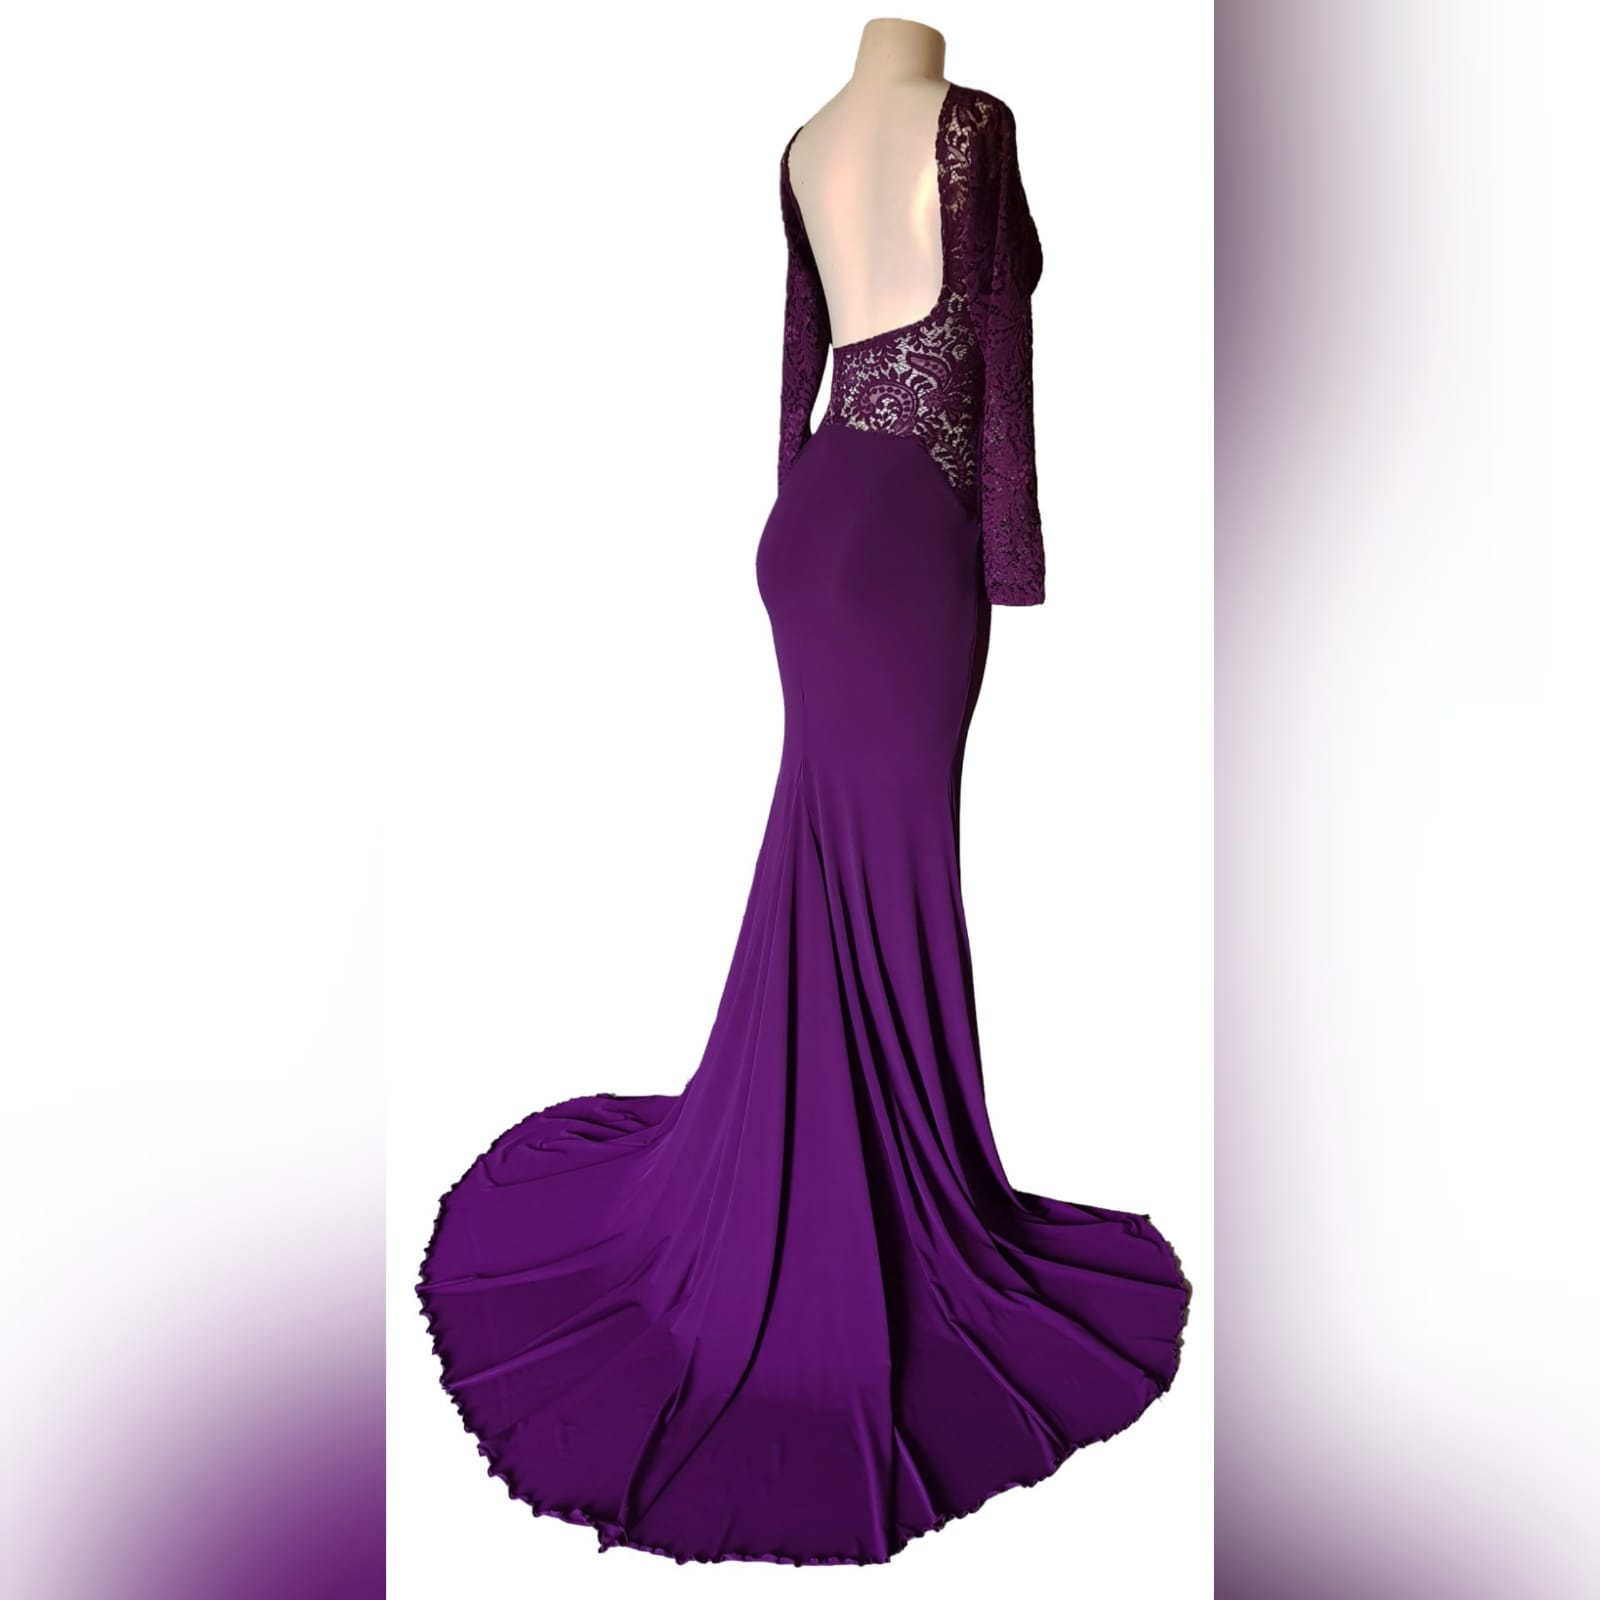 Plum lace bodice soft mermaid matric dance dress 7 plum lace bodice, soft mermaid matric dance dress with a low open rounded open back and hip lace design. With long lace sleeves and a long train.